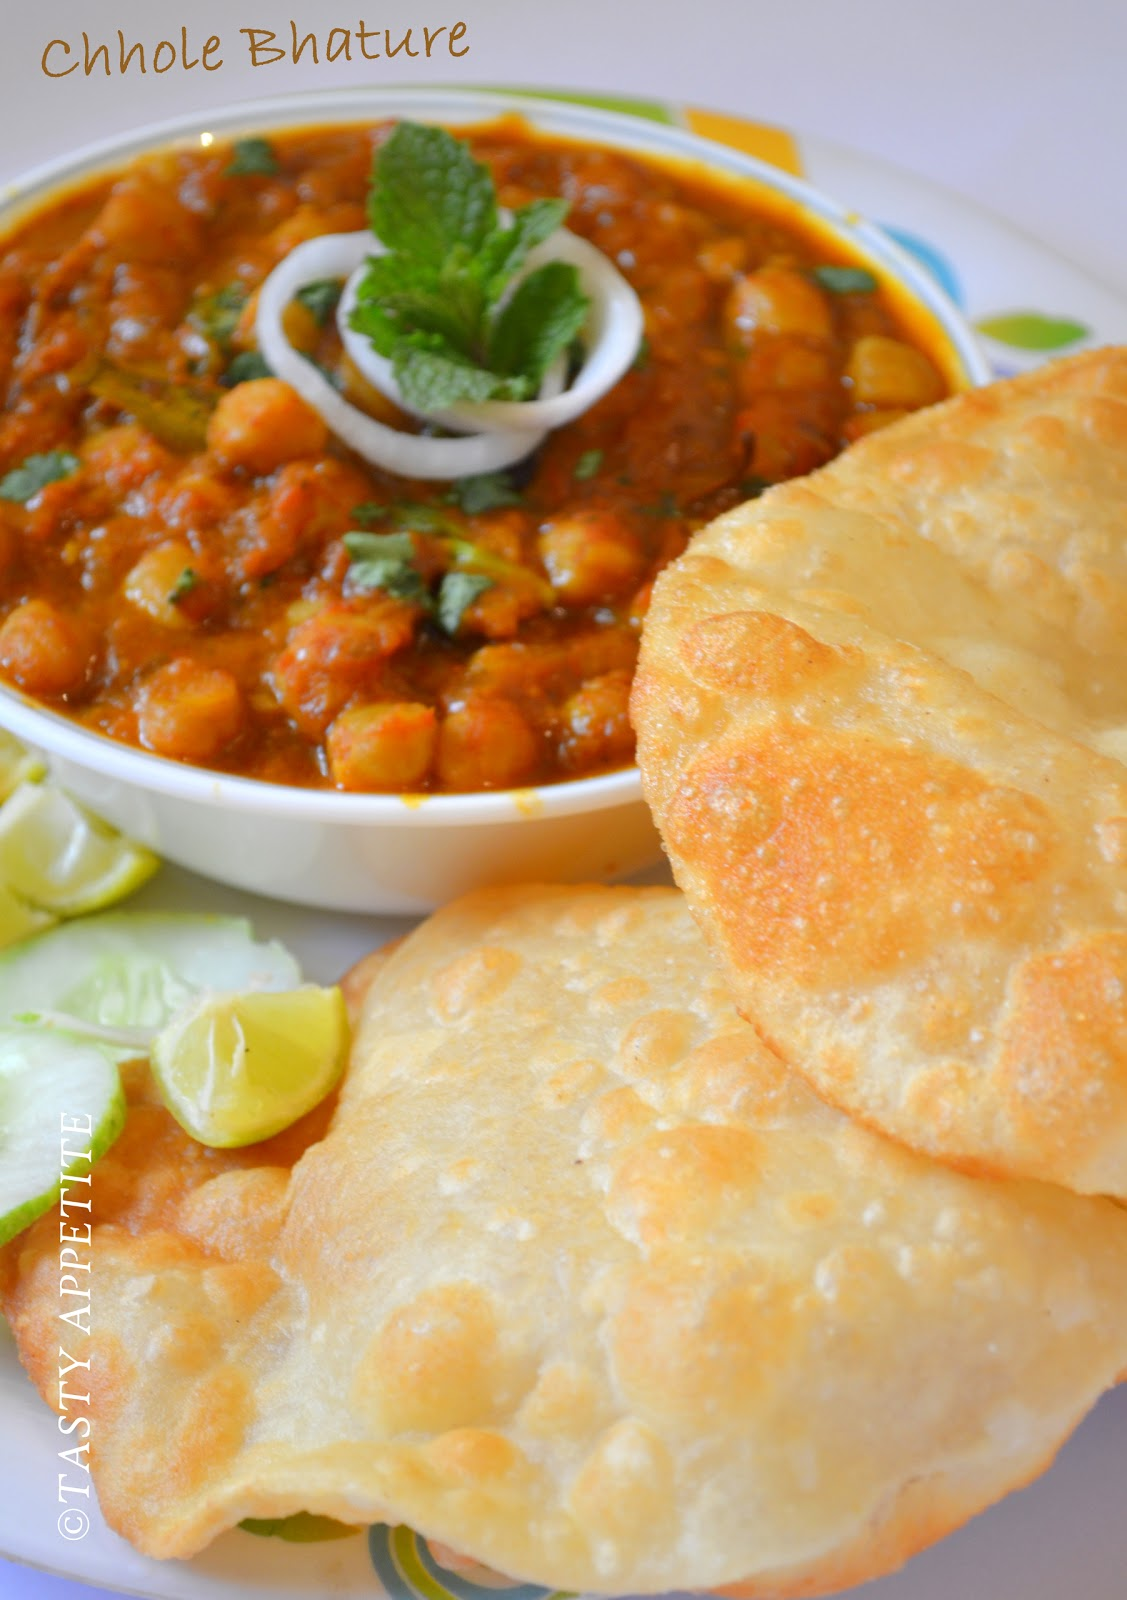 Chole bhature punjabi bhature recipe step by step forumfinder Image collections